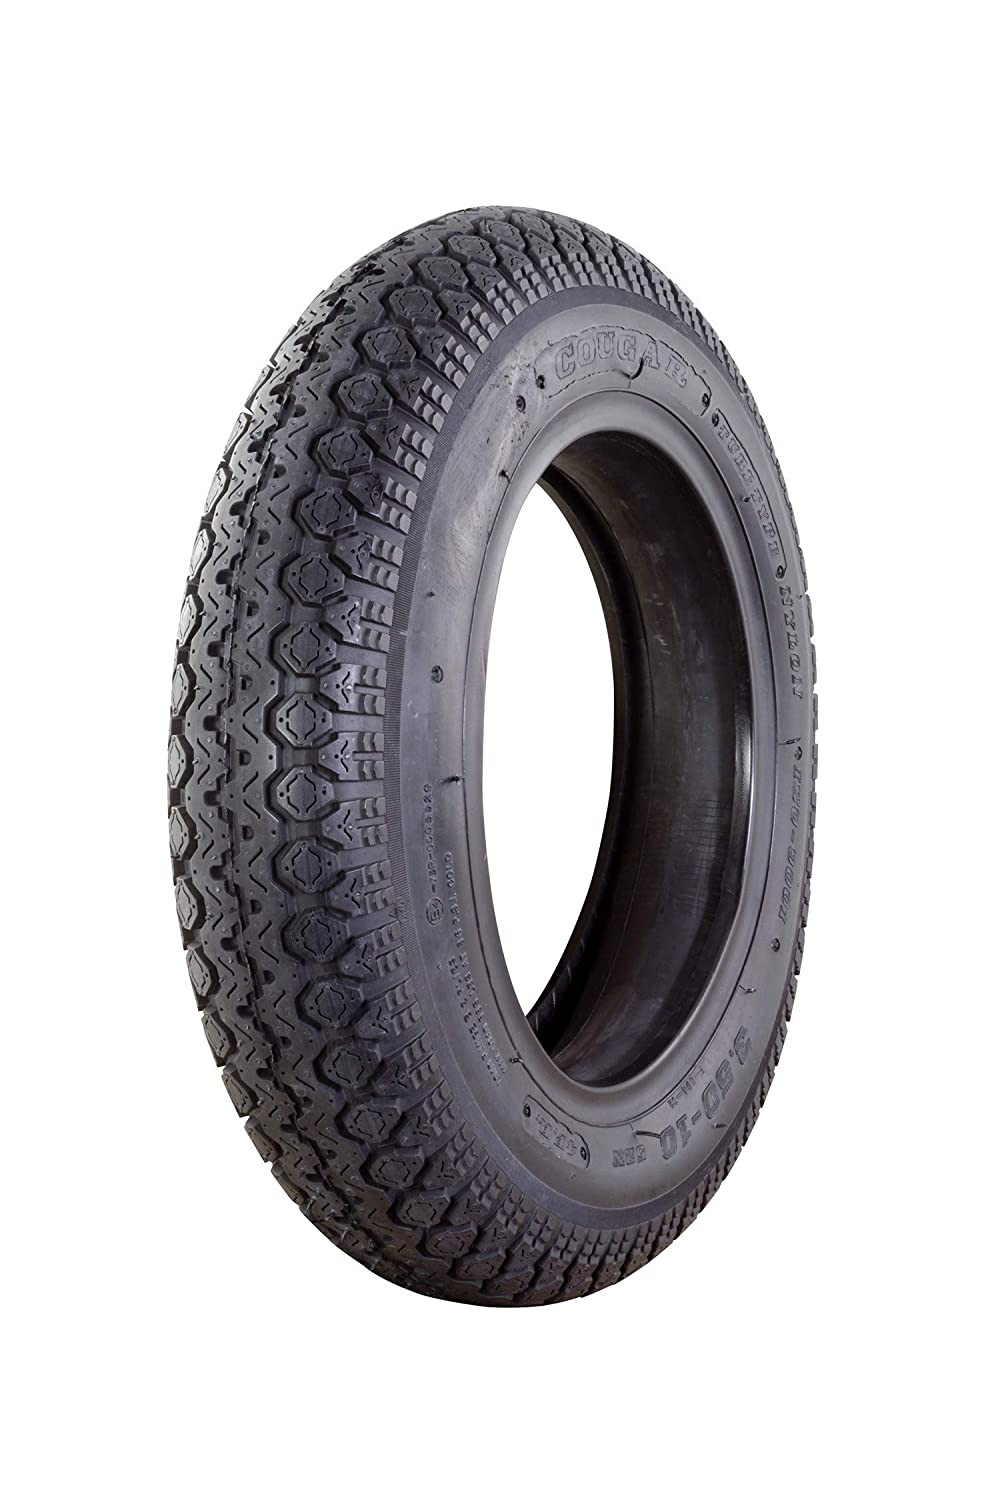 REPLACES TTT10350 :COMMUTER BIKEIT TUBE-TYPE TYRE 350-10 #894